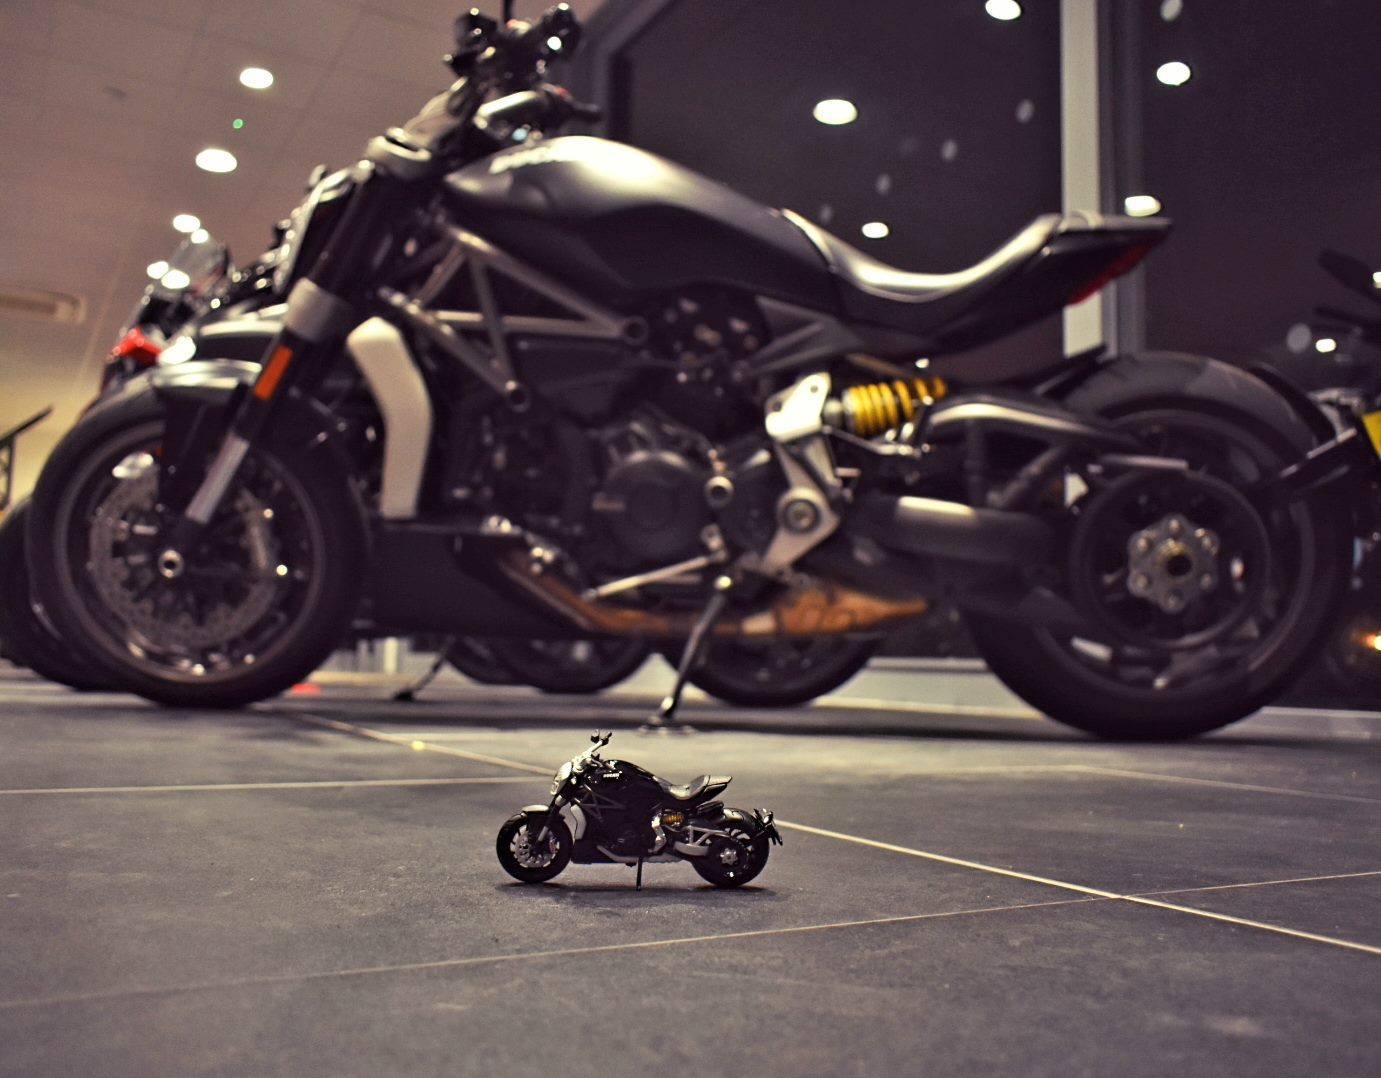 Big or small, We have an Xdiavel for everyone... #notmachinewashable #xdiavel